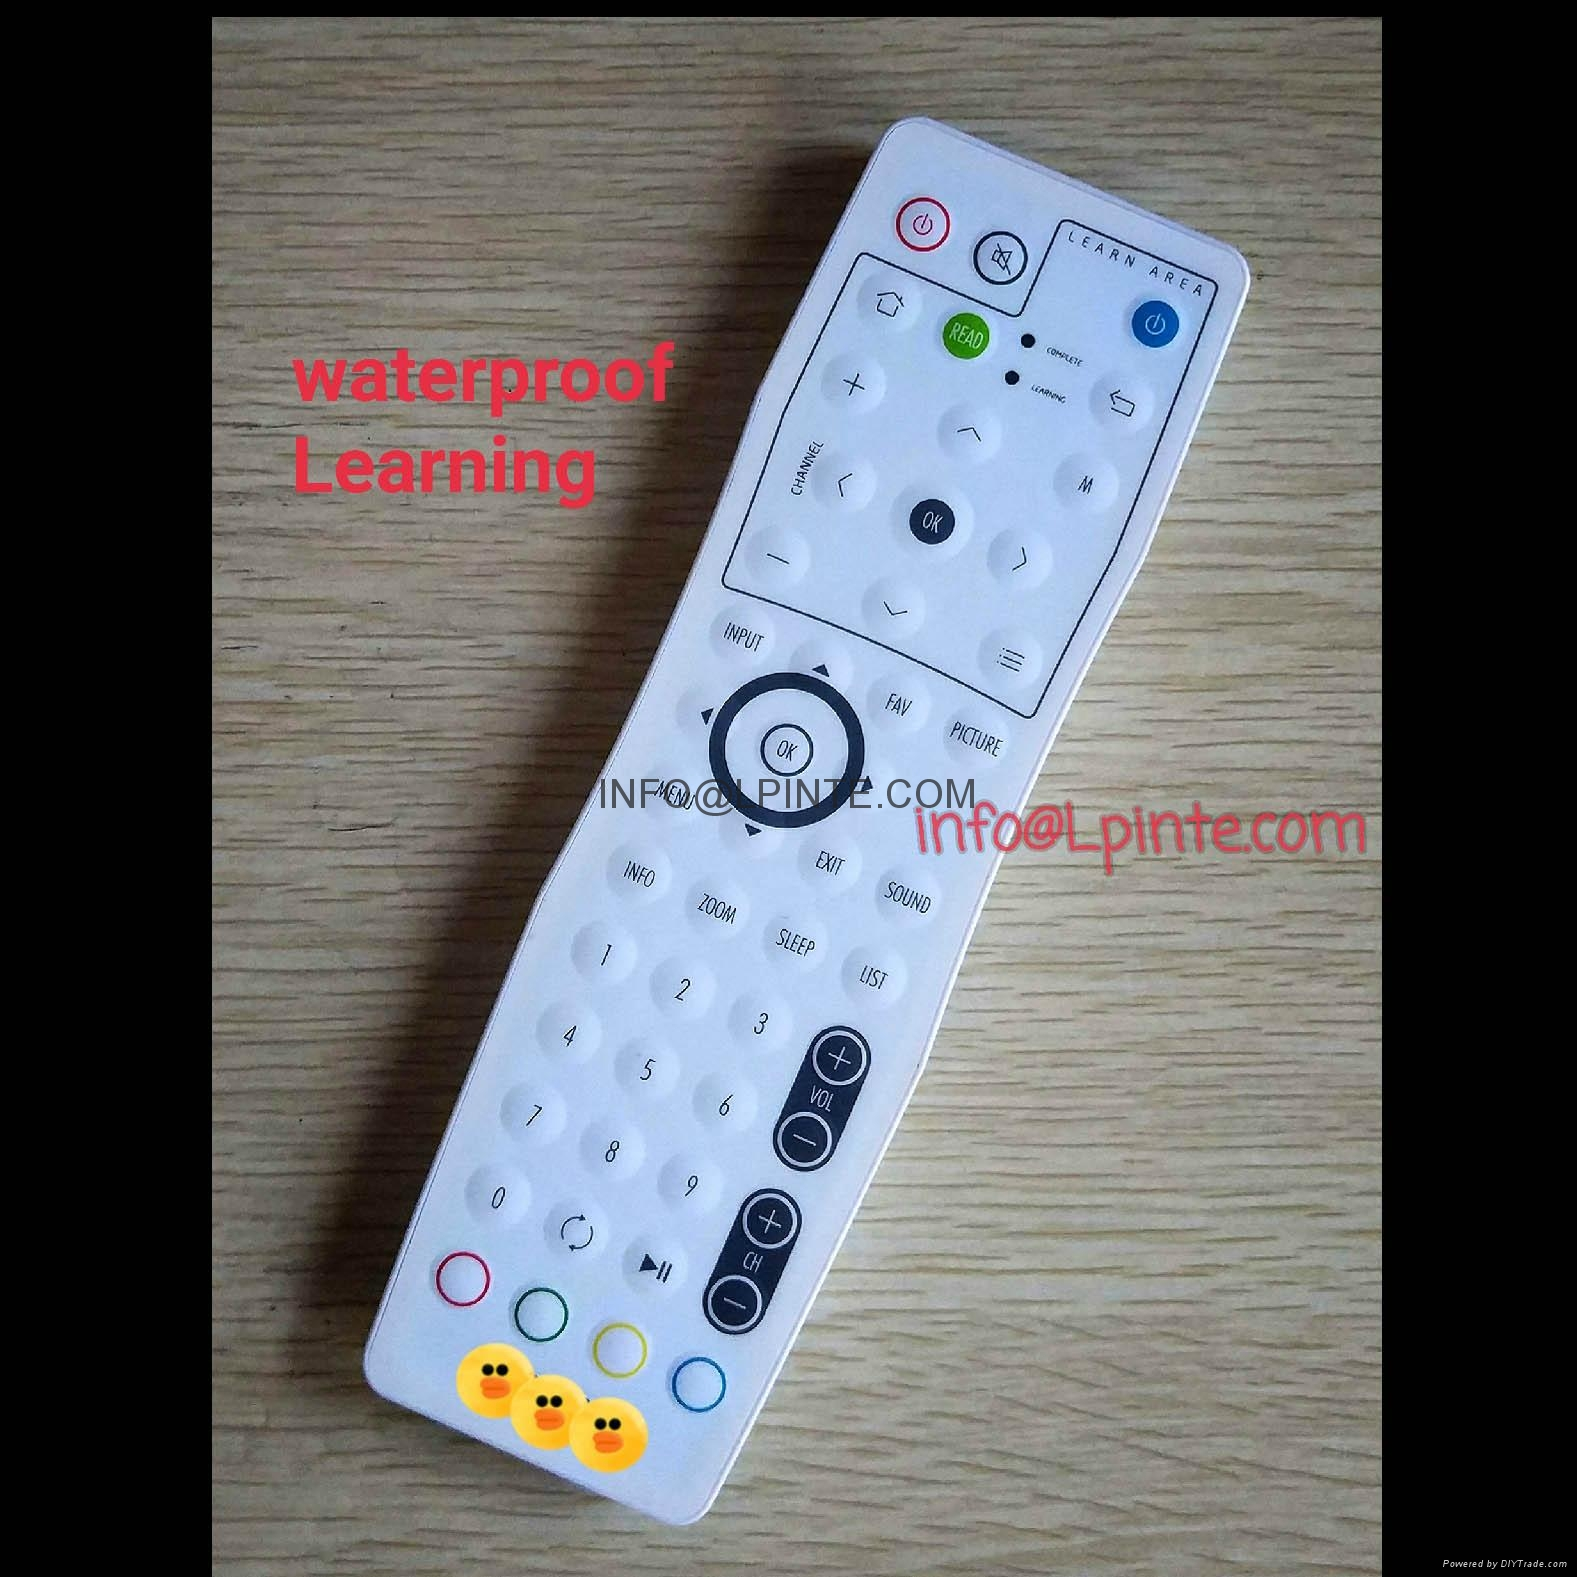 bathroom tv waterproof lcd tv remote control clean hospital wisdom learning 1